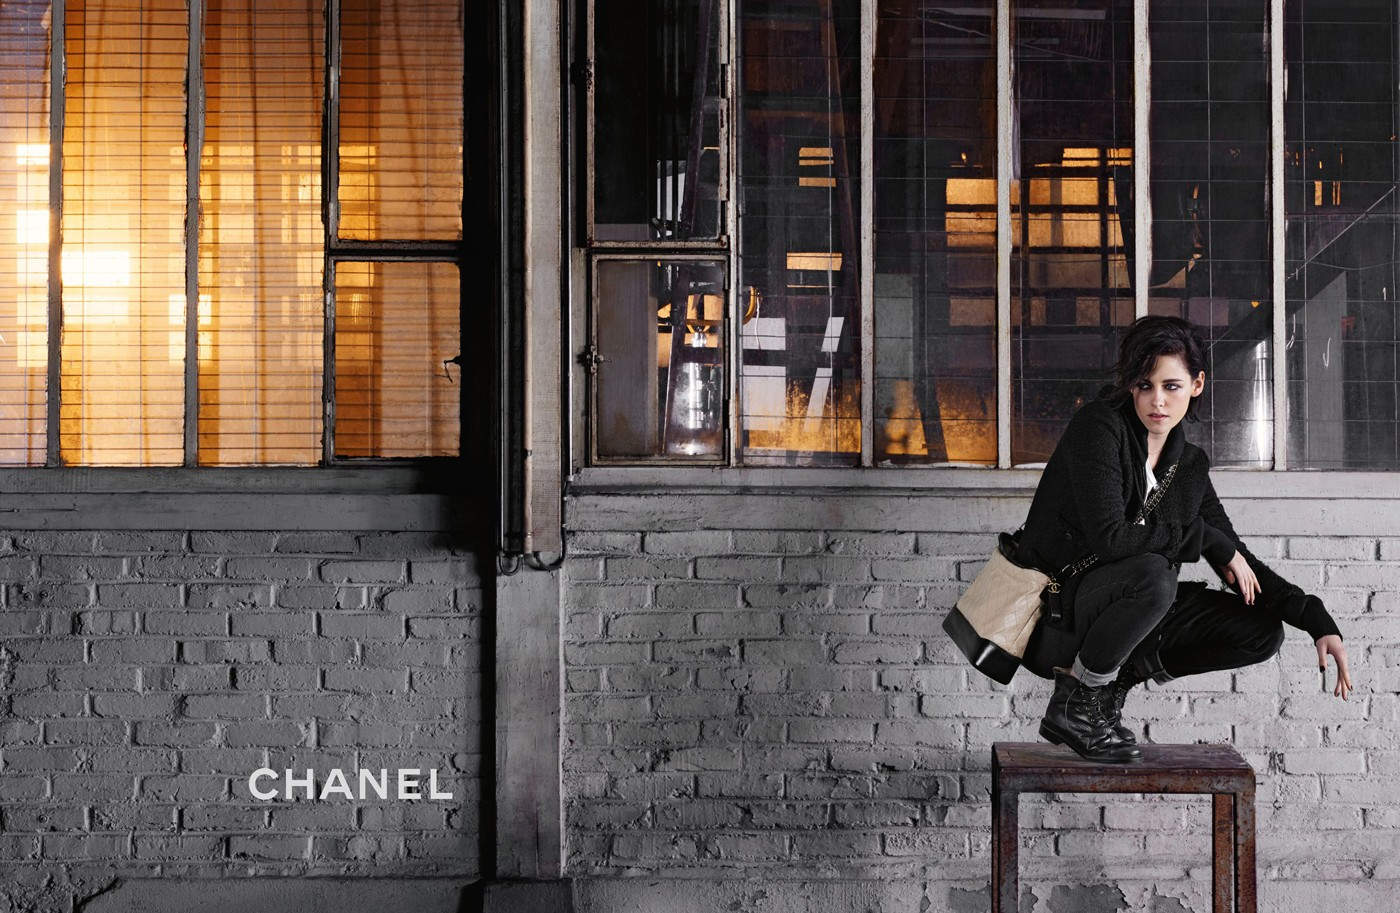 Coco Chanel - 'The Year of Gabrielle'